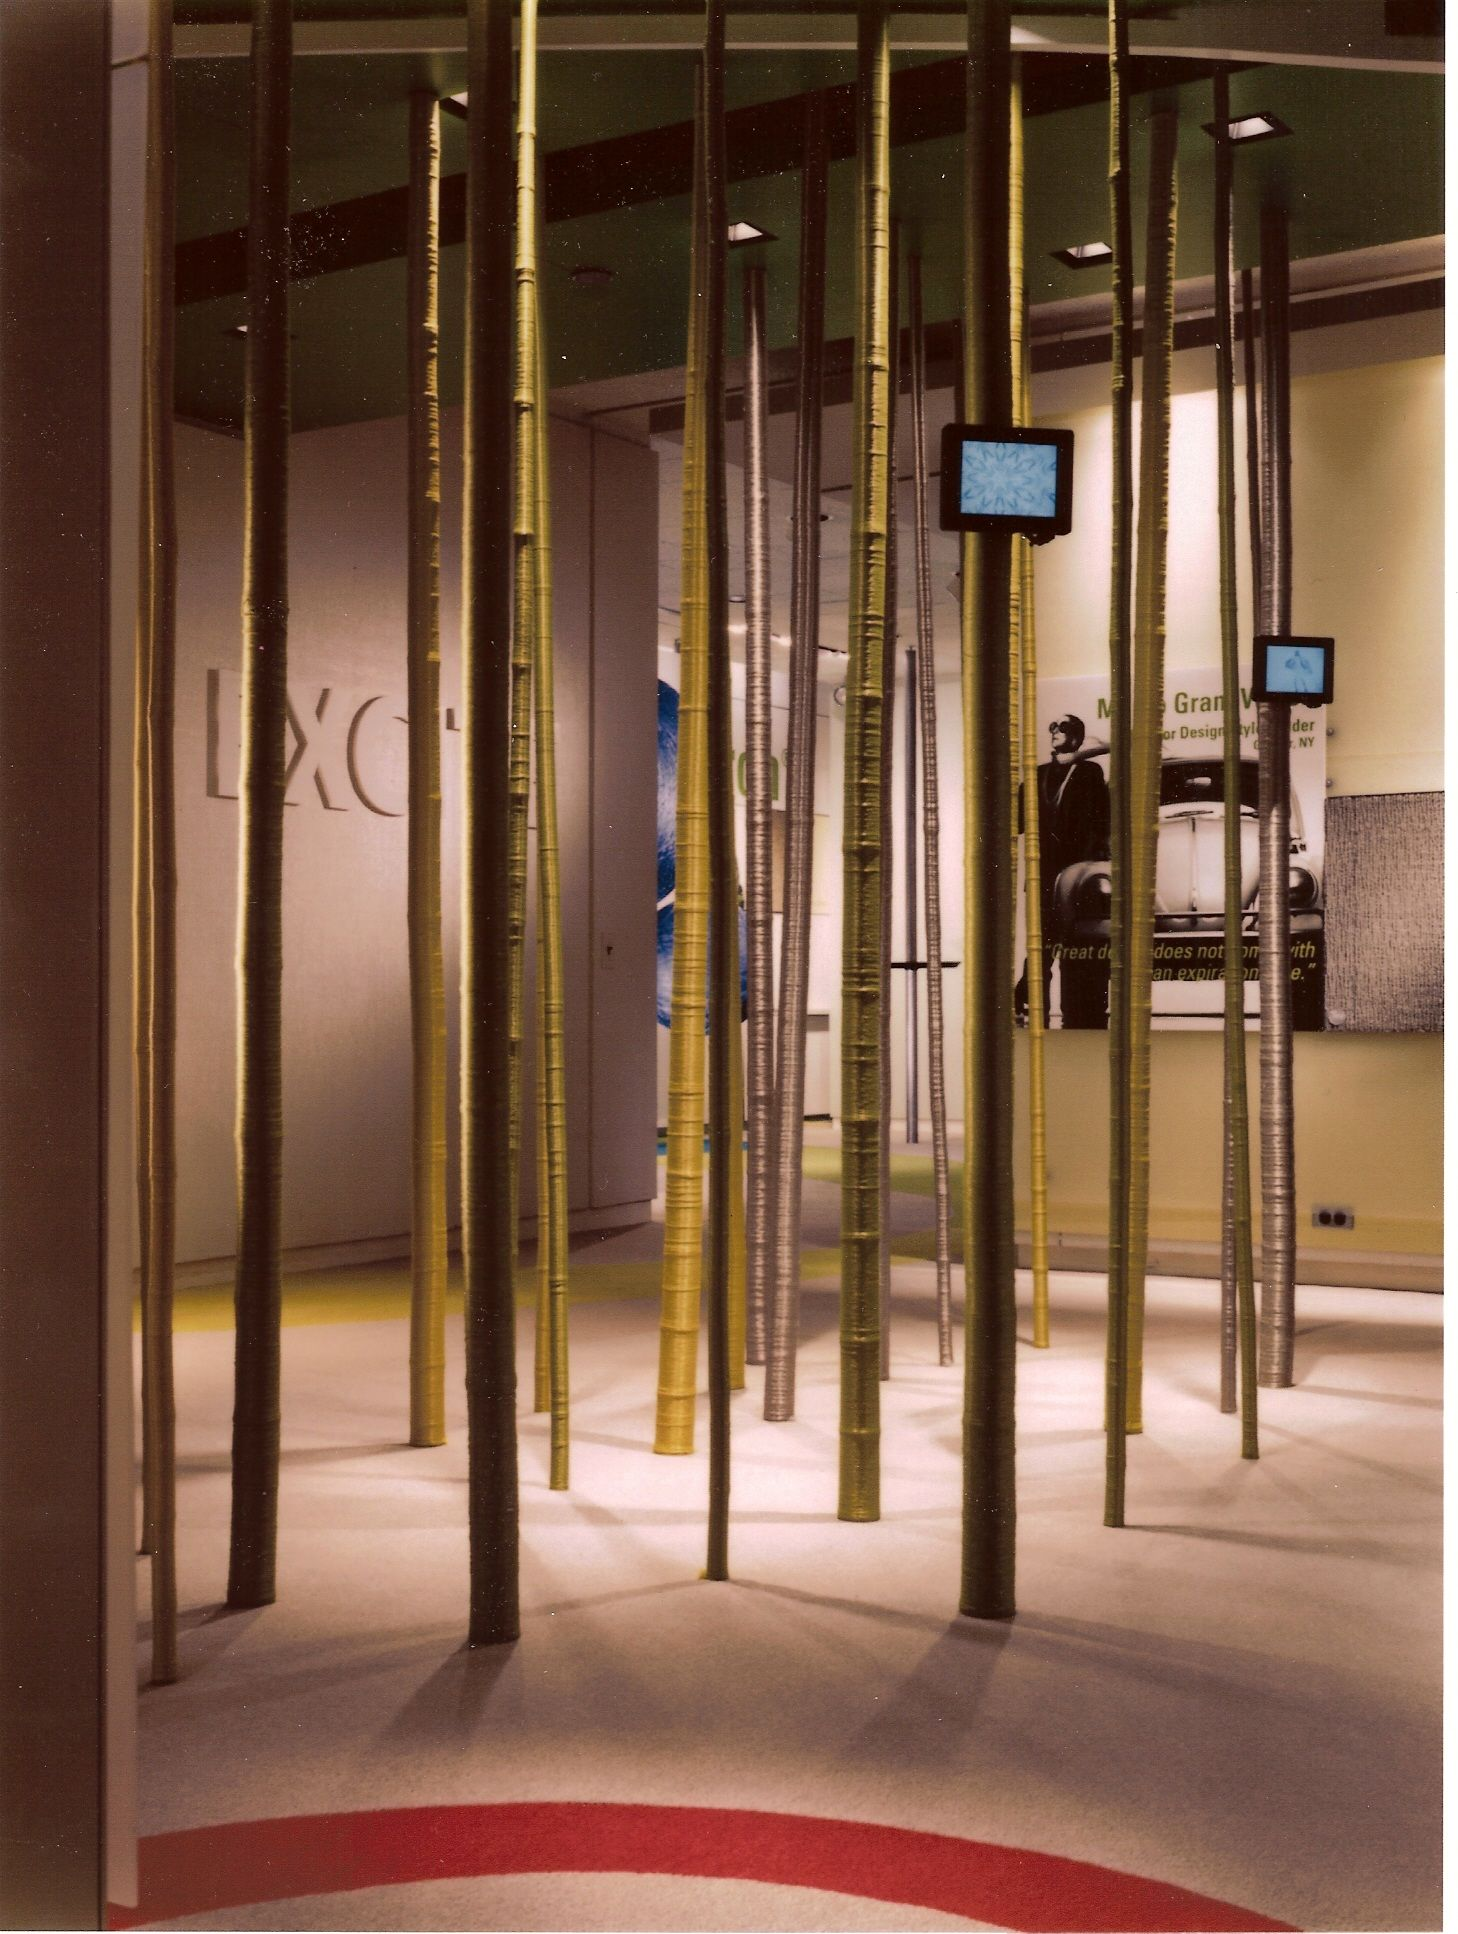 Printed graphics, dimensional copy, fiber-wrapped bamboo poles, and electronics installation by Ndio.